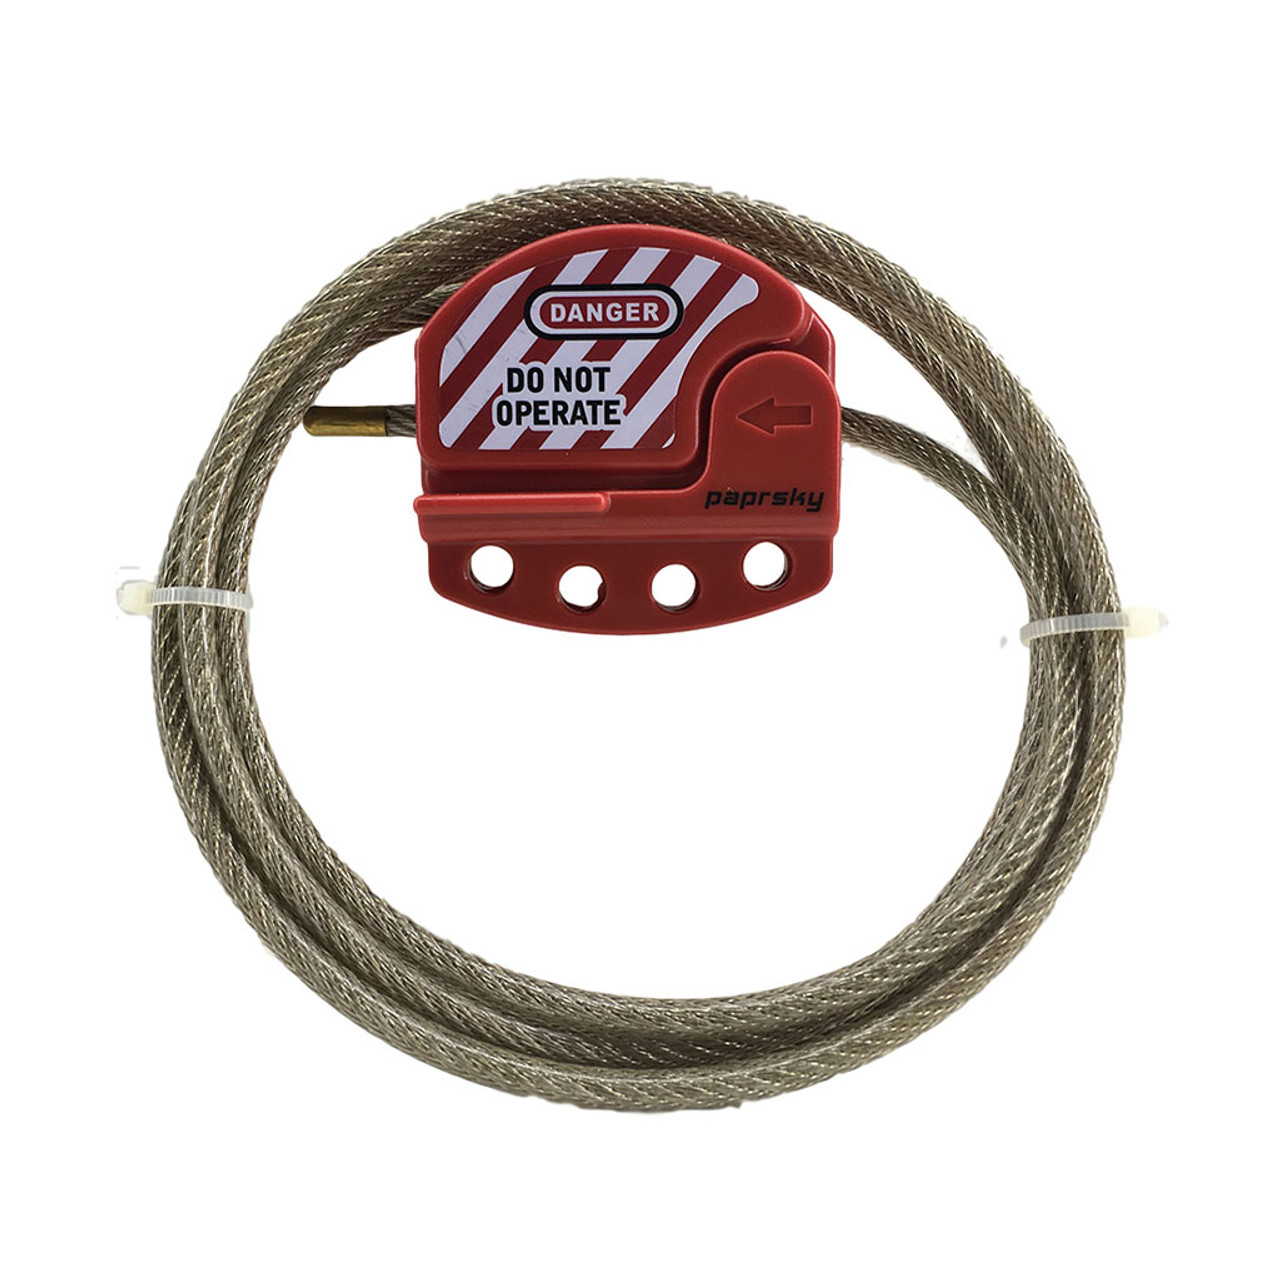 Adjustable Cable Lockout - 6mm PS-LOTO-ACL6